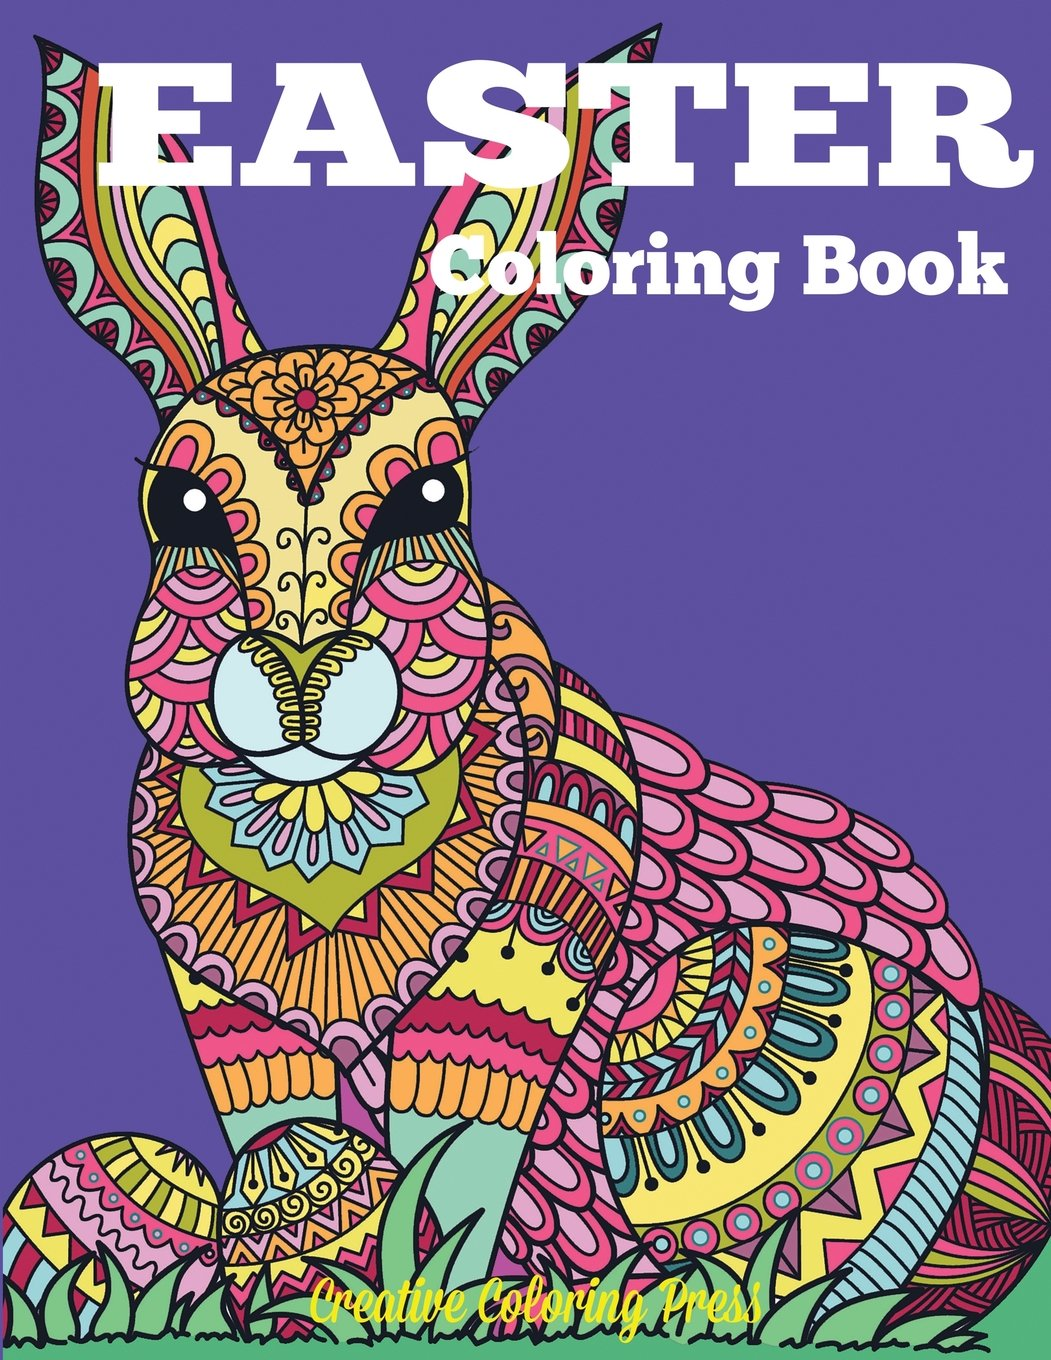 Amazon.com: Easter Coloring Book: Easter and Spring Coloring ...